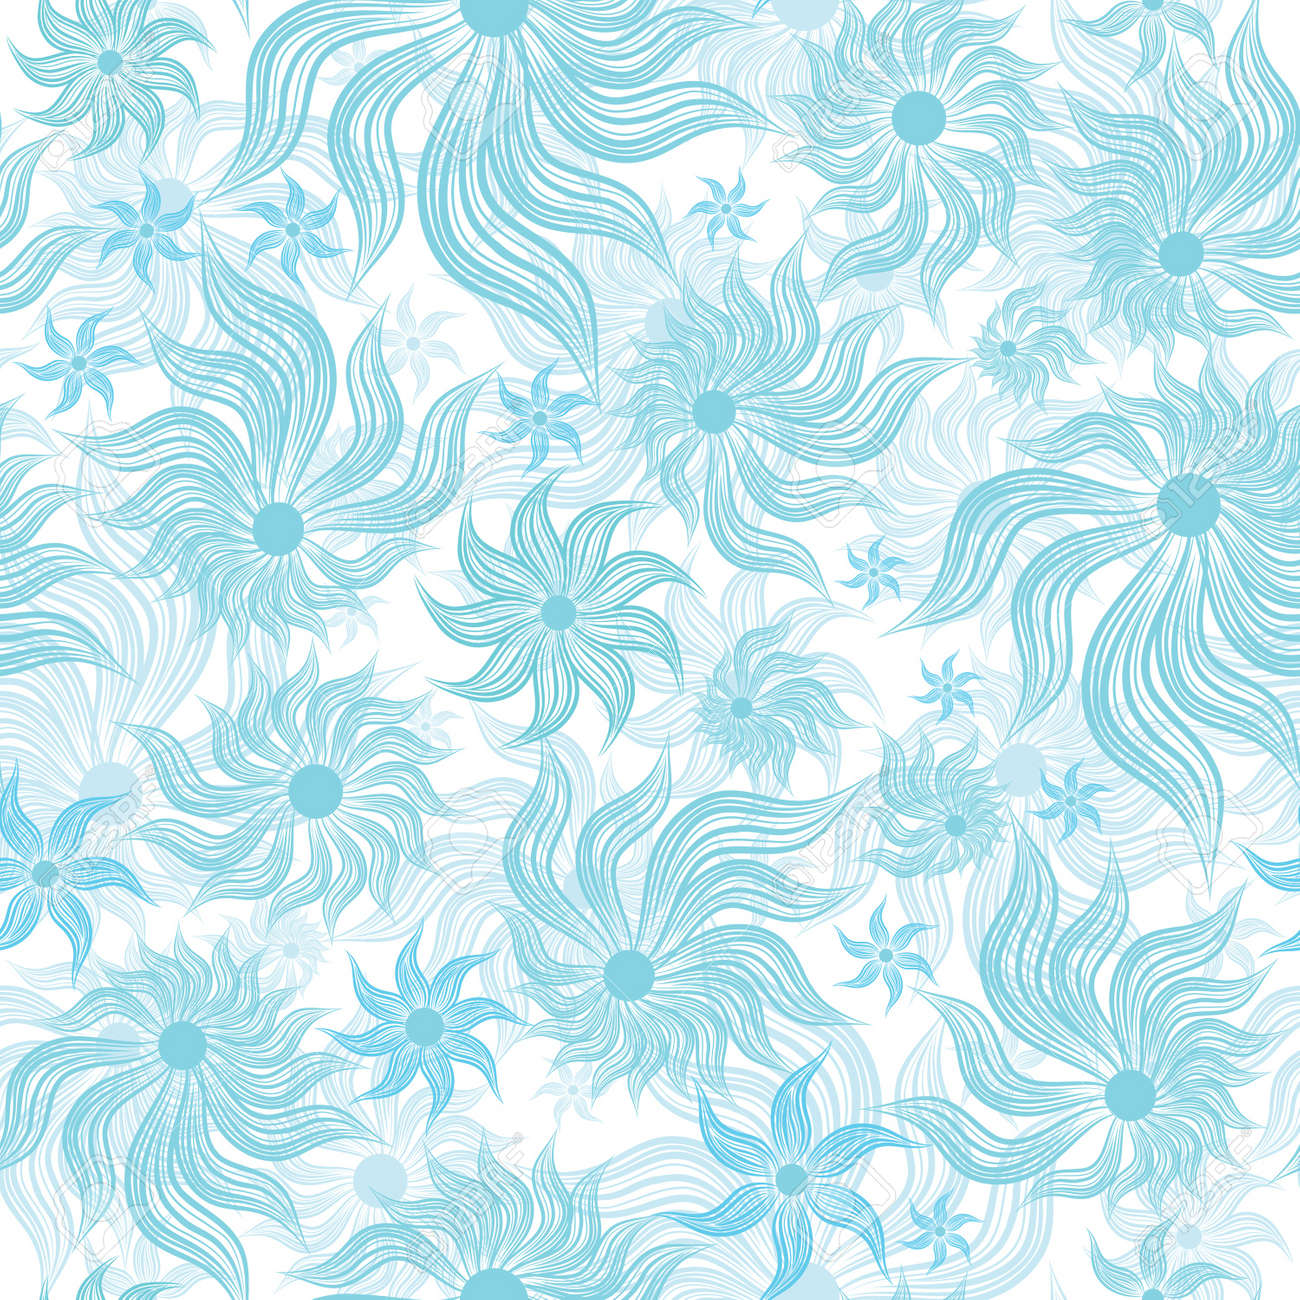 Abstract art blue flower seamless background pattern, floral vintage illustration. Cute, filigree wallpaper with flourishes. Stock Vector - 9902166